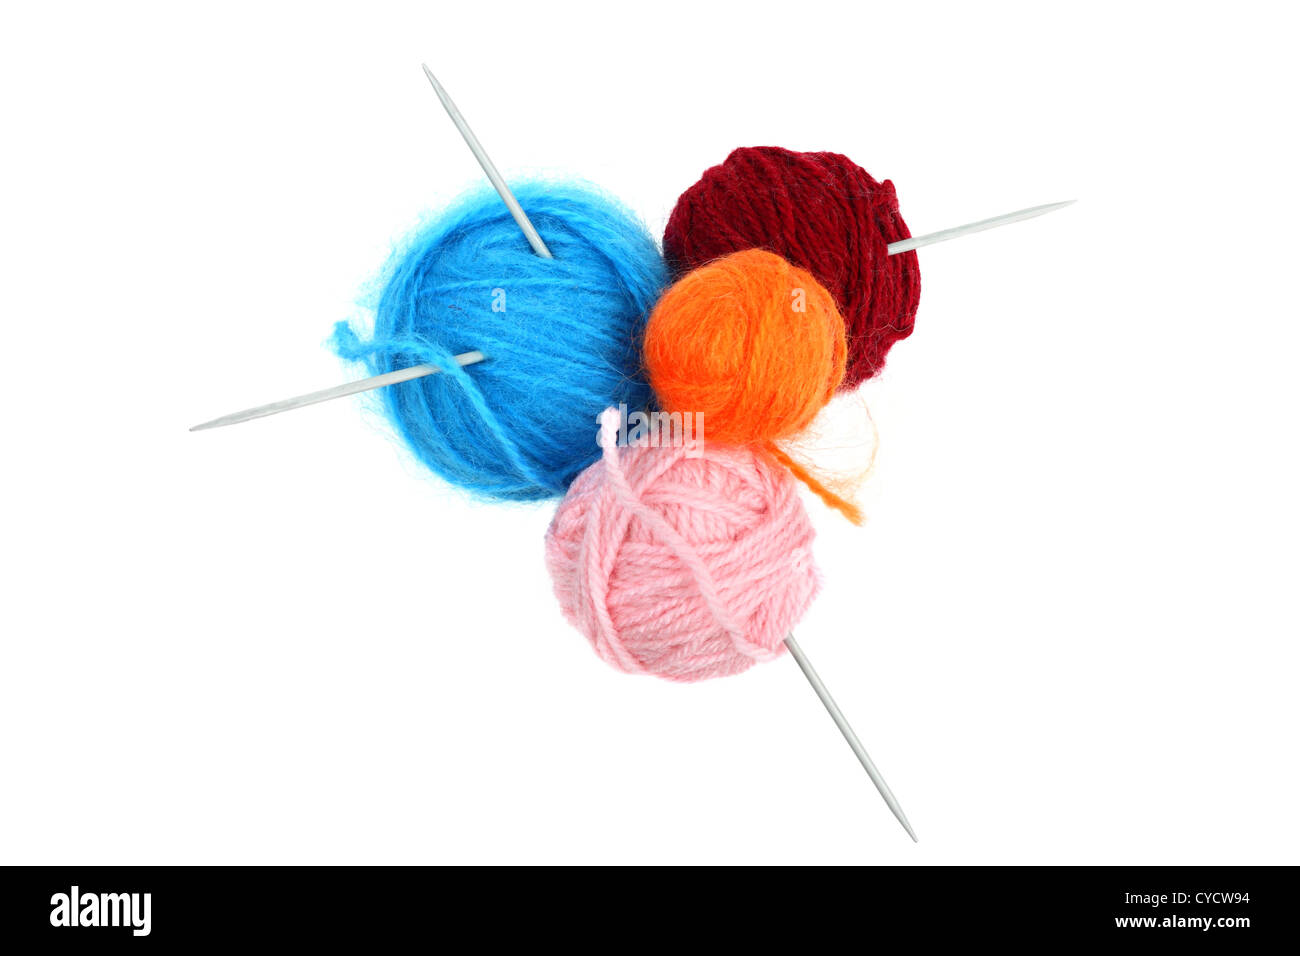 Balls of colorful wool yarn with knitting needles isolated on white - Stock Image